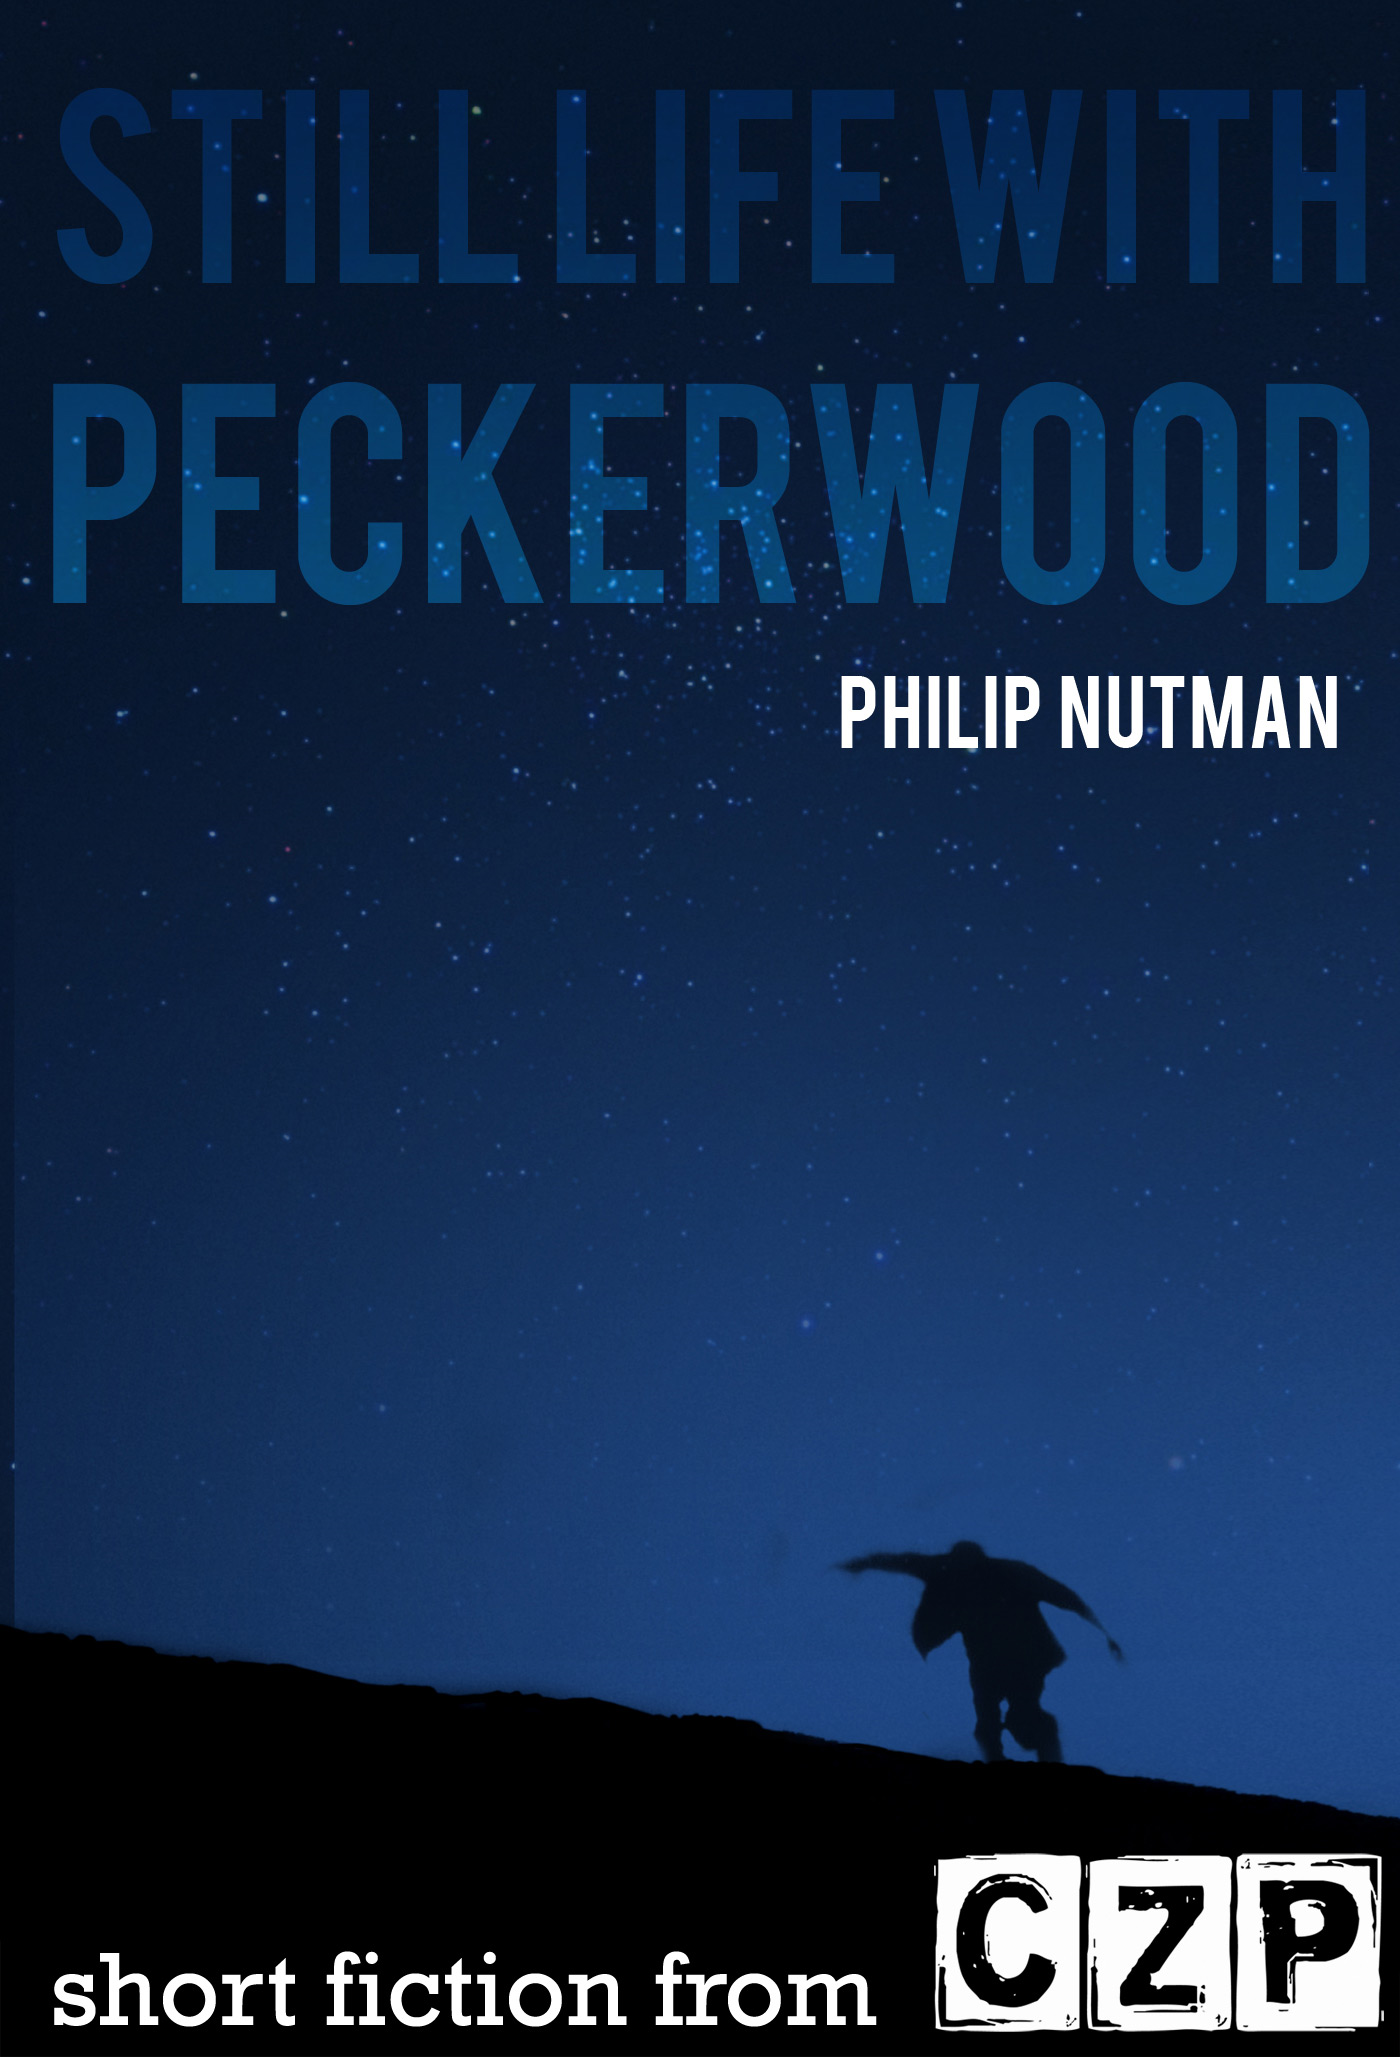 Still Life With Peckerwood